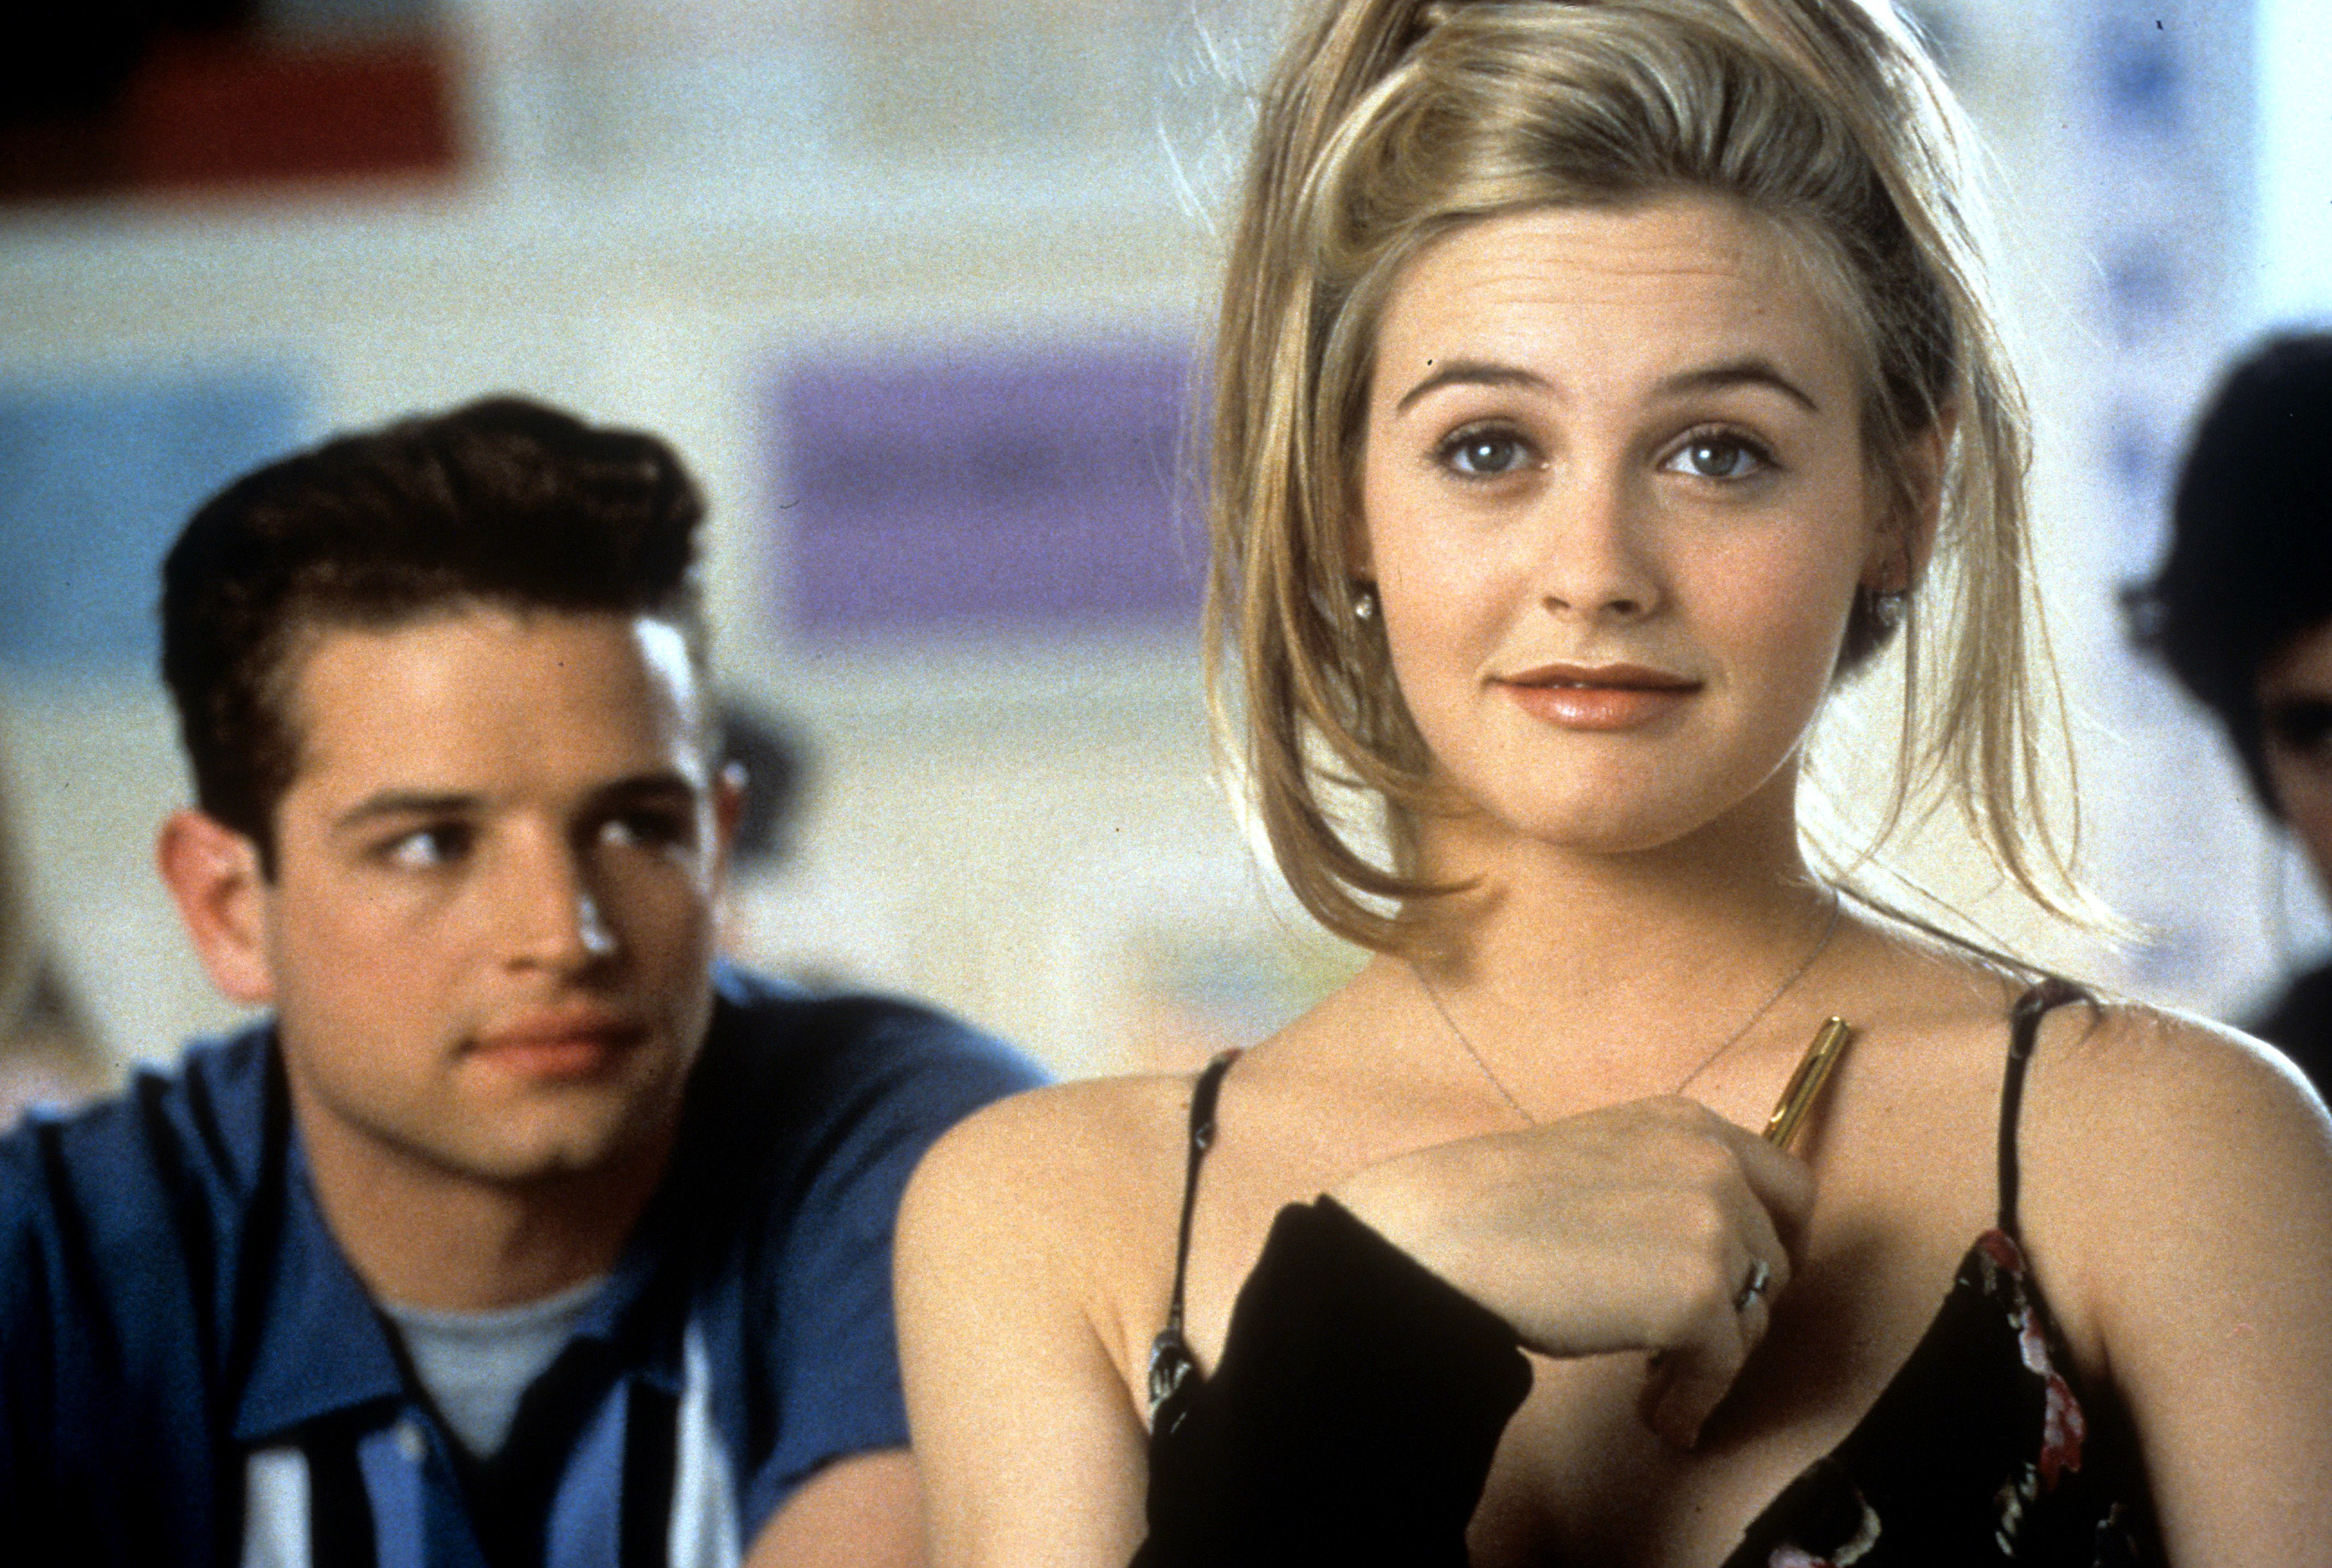 Clueless is getting a TV reboot without Cher